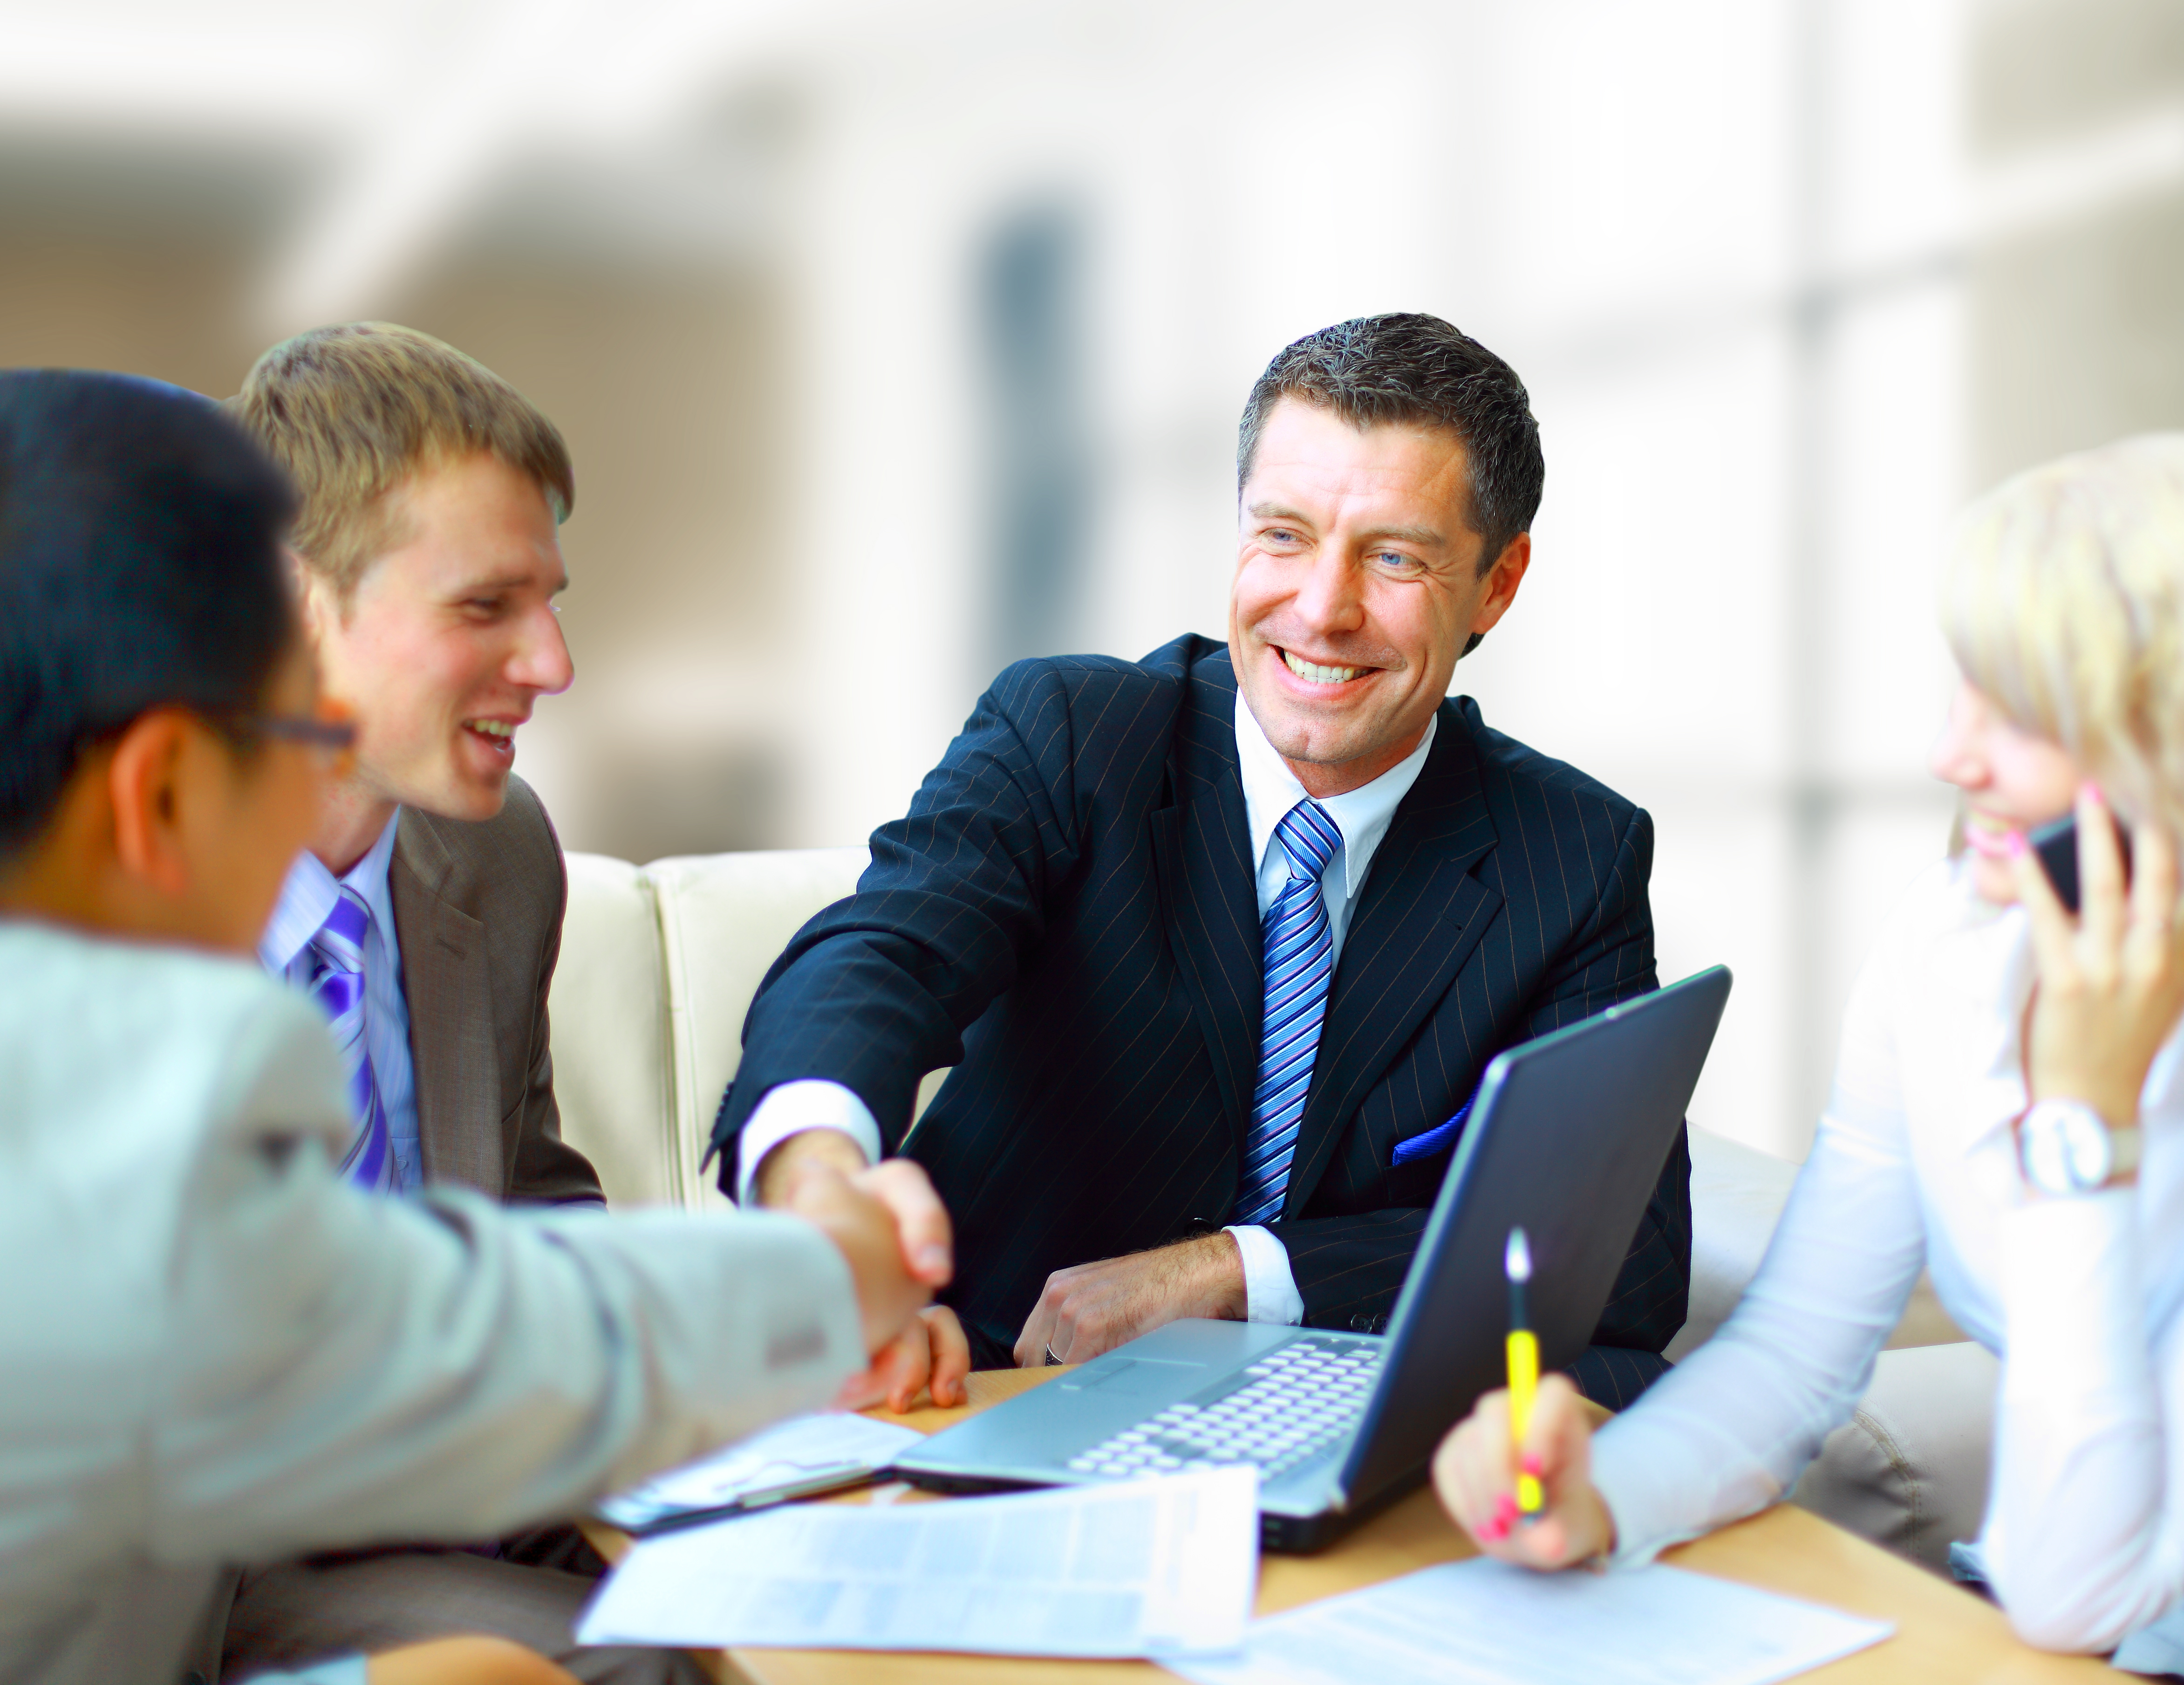 Business shaking hands, finishing up a meeting real estate investing